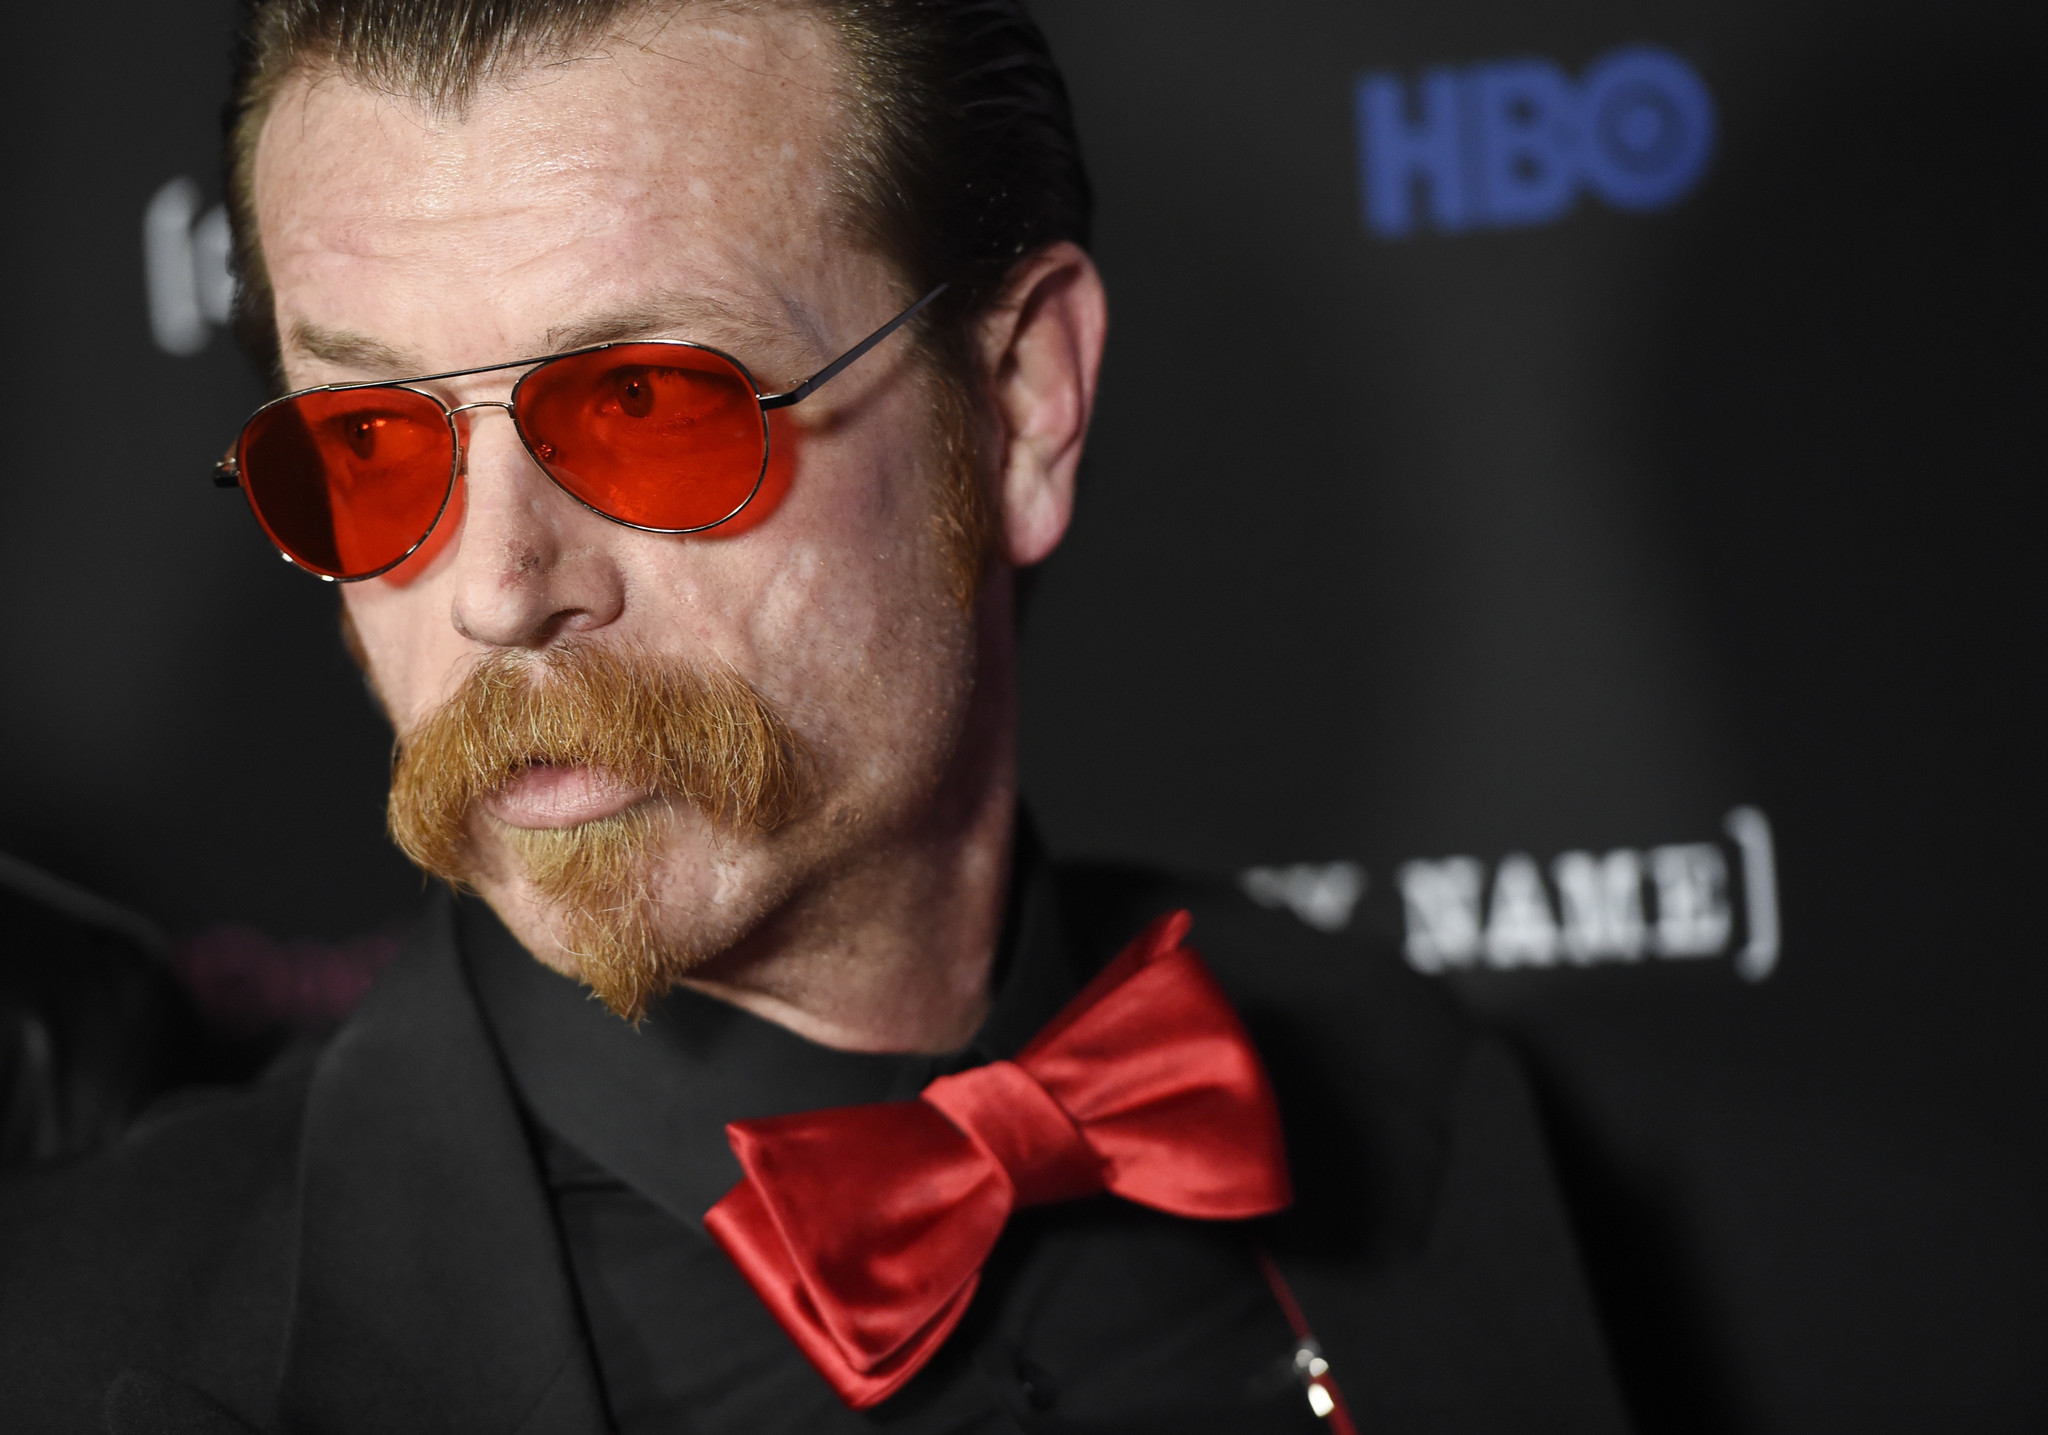 Eagles of Death Metal's Jesse Hughes rips gun protest ...